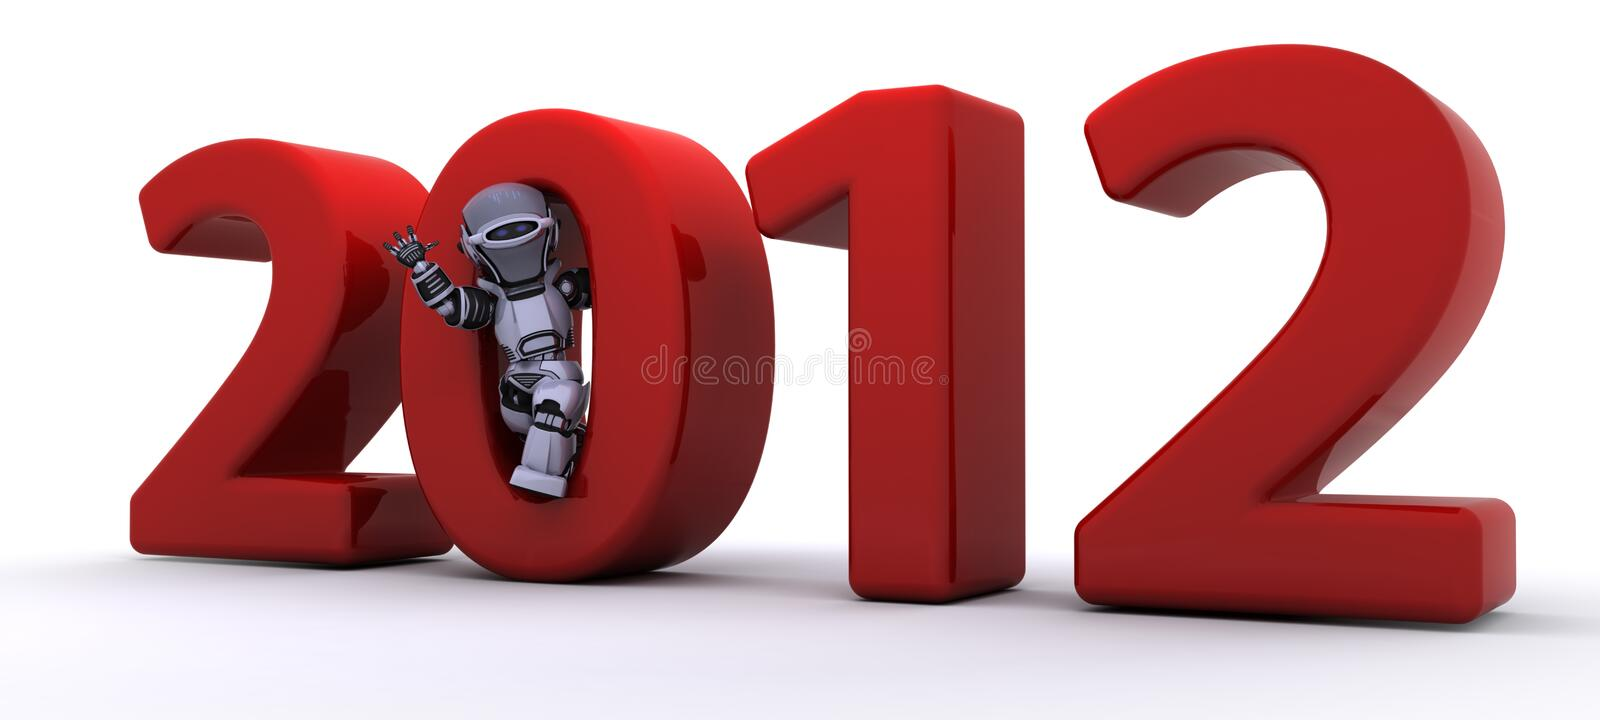 Download Robot Bringing The New Year In Stock Photography - Image: 21989392